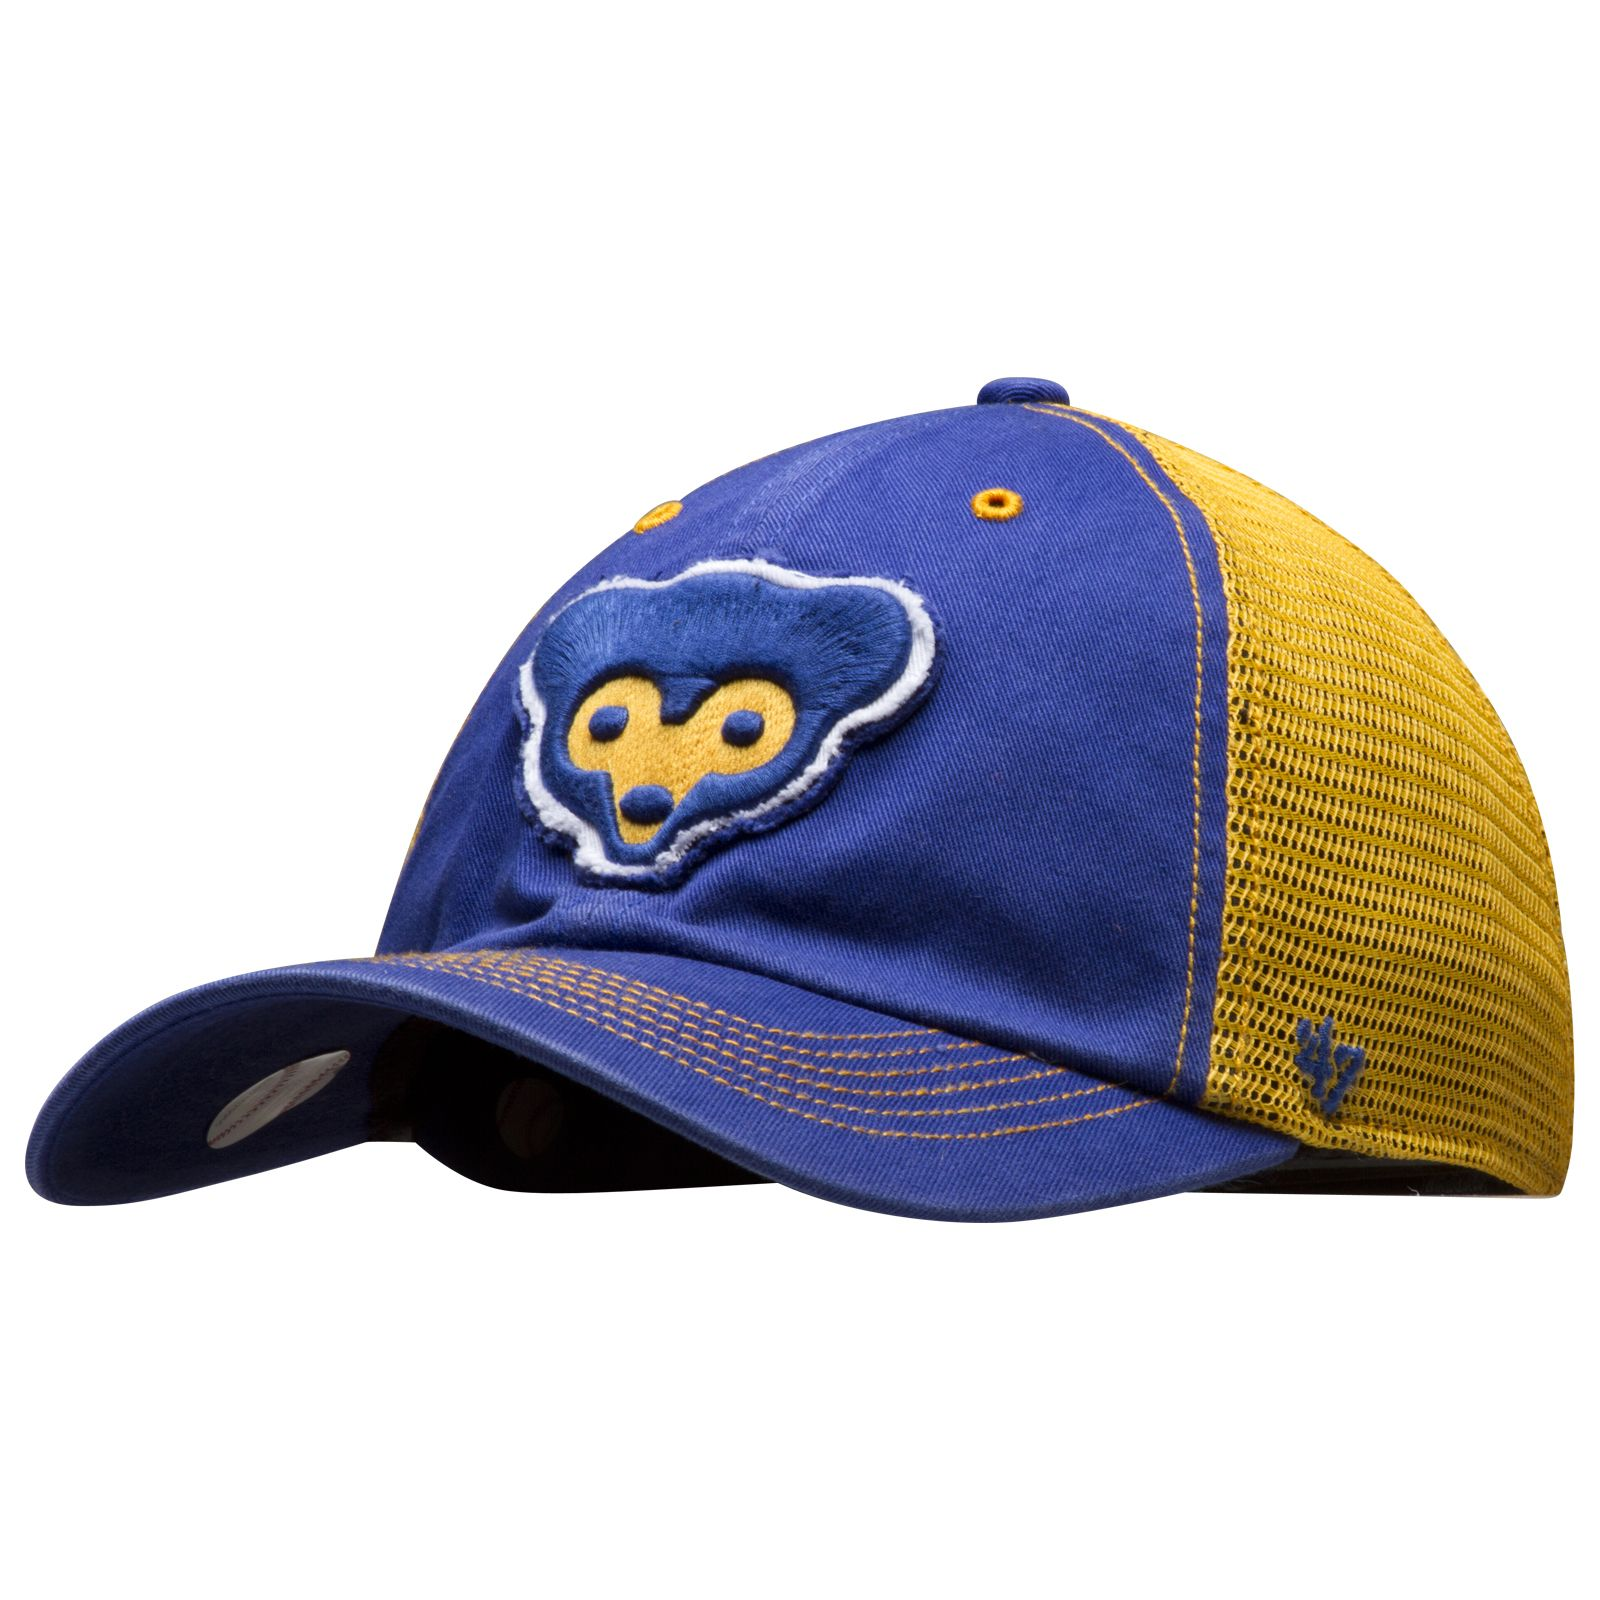 Chicago Cubs Royal and Gold 1969 Cub Face Logo Mesh Back Fitted Hat by 47  Brand  Chicago  Cubs  ChicagoCubs 22d8b4eb3898